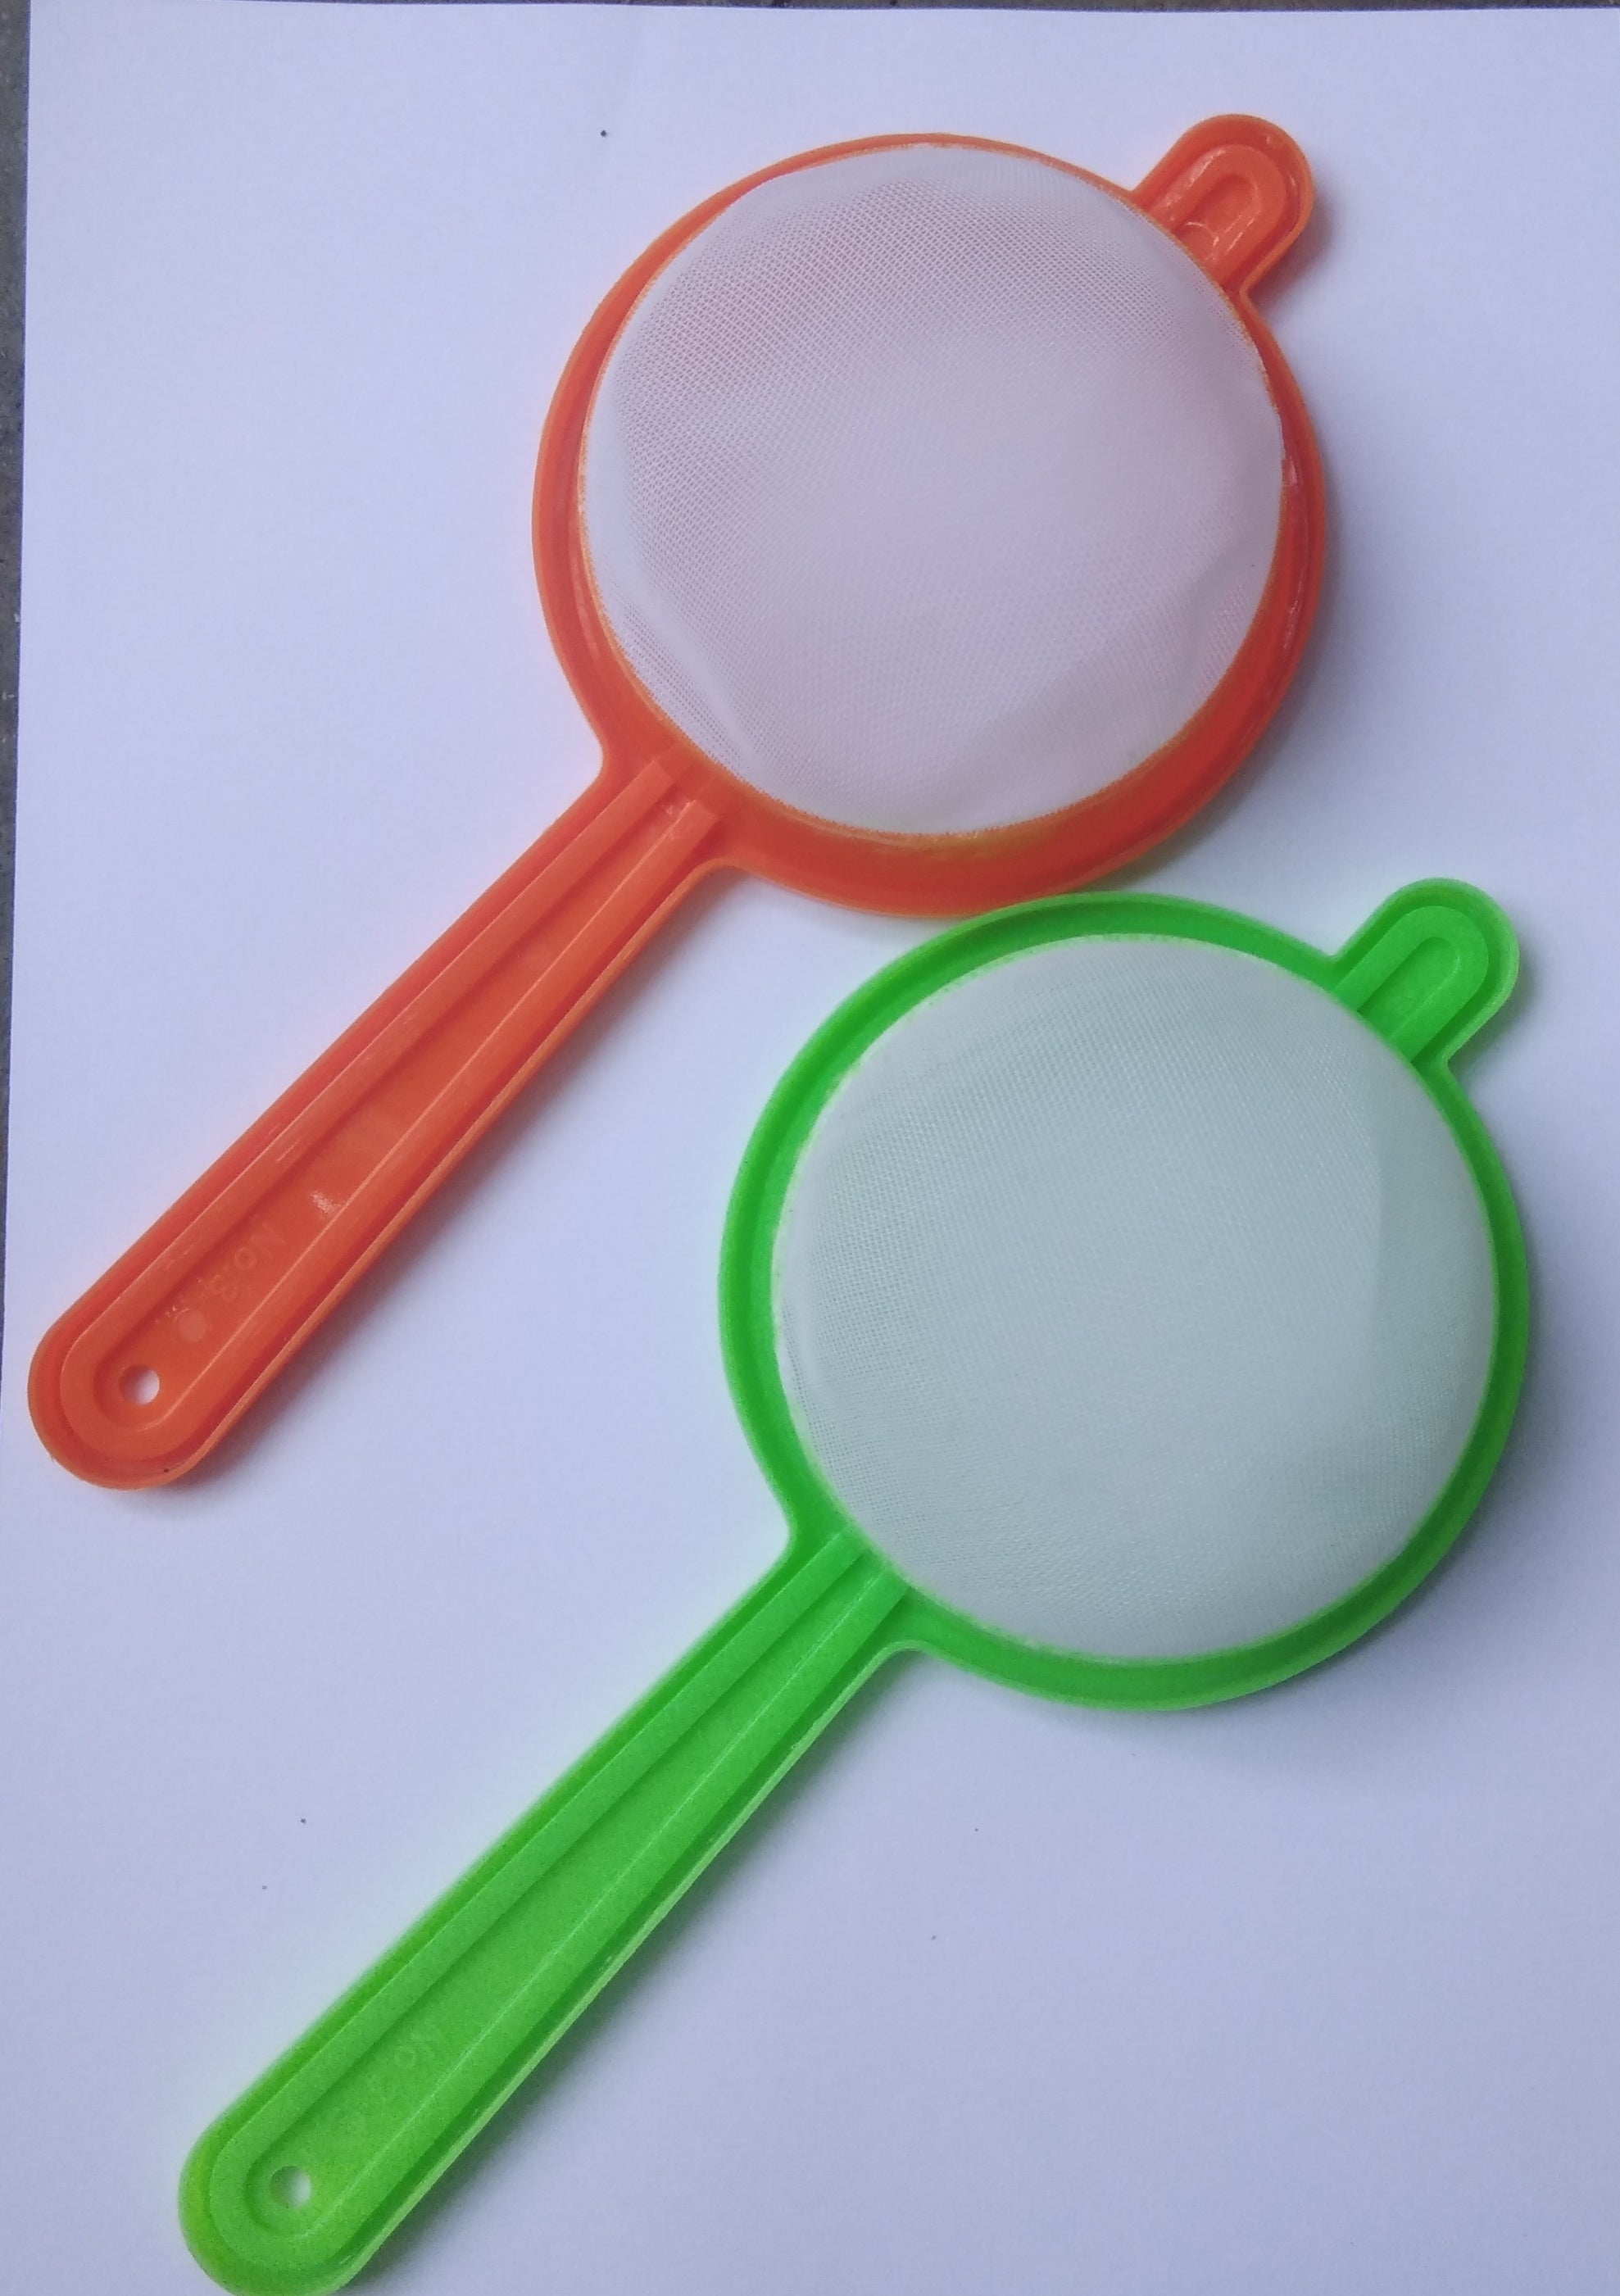 2 Pcs Plastic Tea Filter